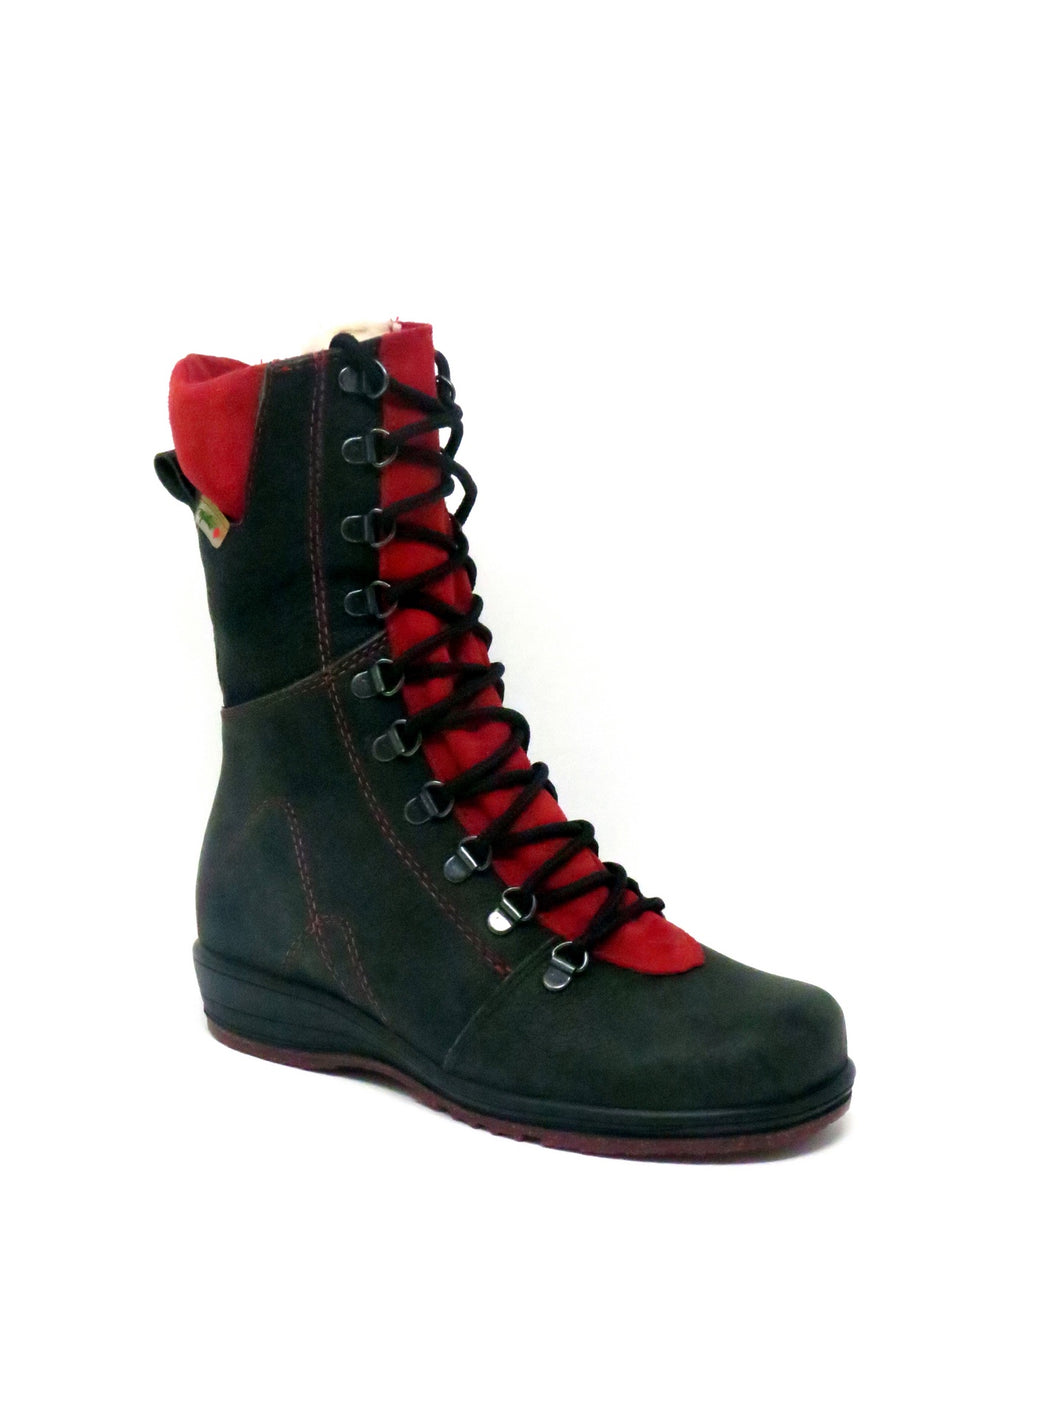 Martino | 134702-01 | Banff | Black-Red